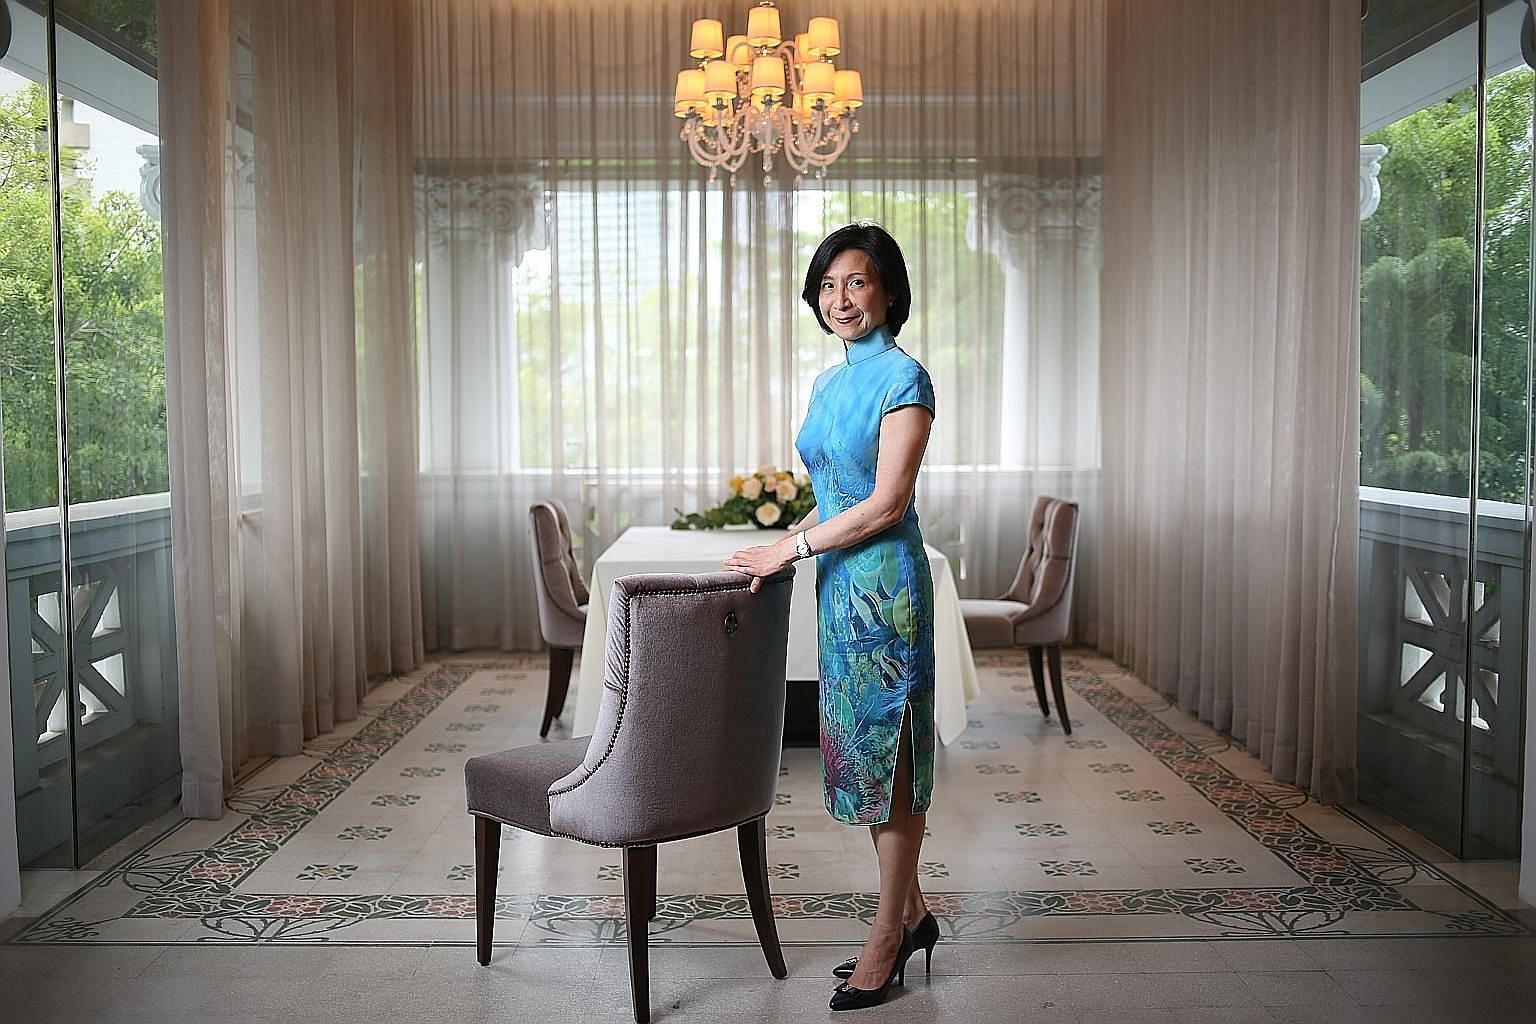 Ms Chew Gek Khim grew up in the Cairnhill Road house owned by her banker grandfather Tan Chin Tuan. The conserved building is now used for business and family gatherings and activities of the philanthropic Tan Chin Tuan Foundation. Ms Chew now lives